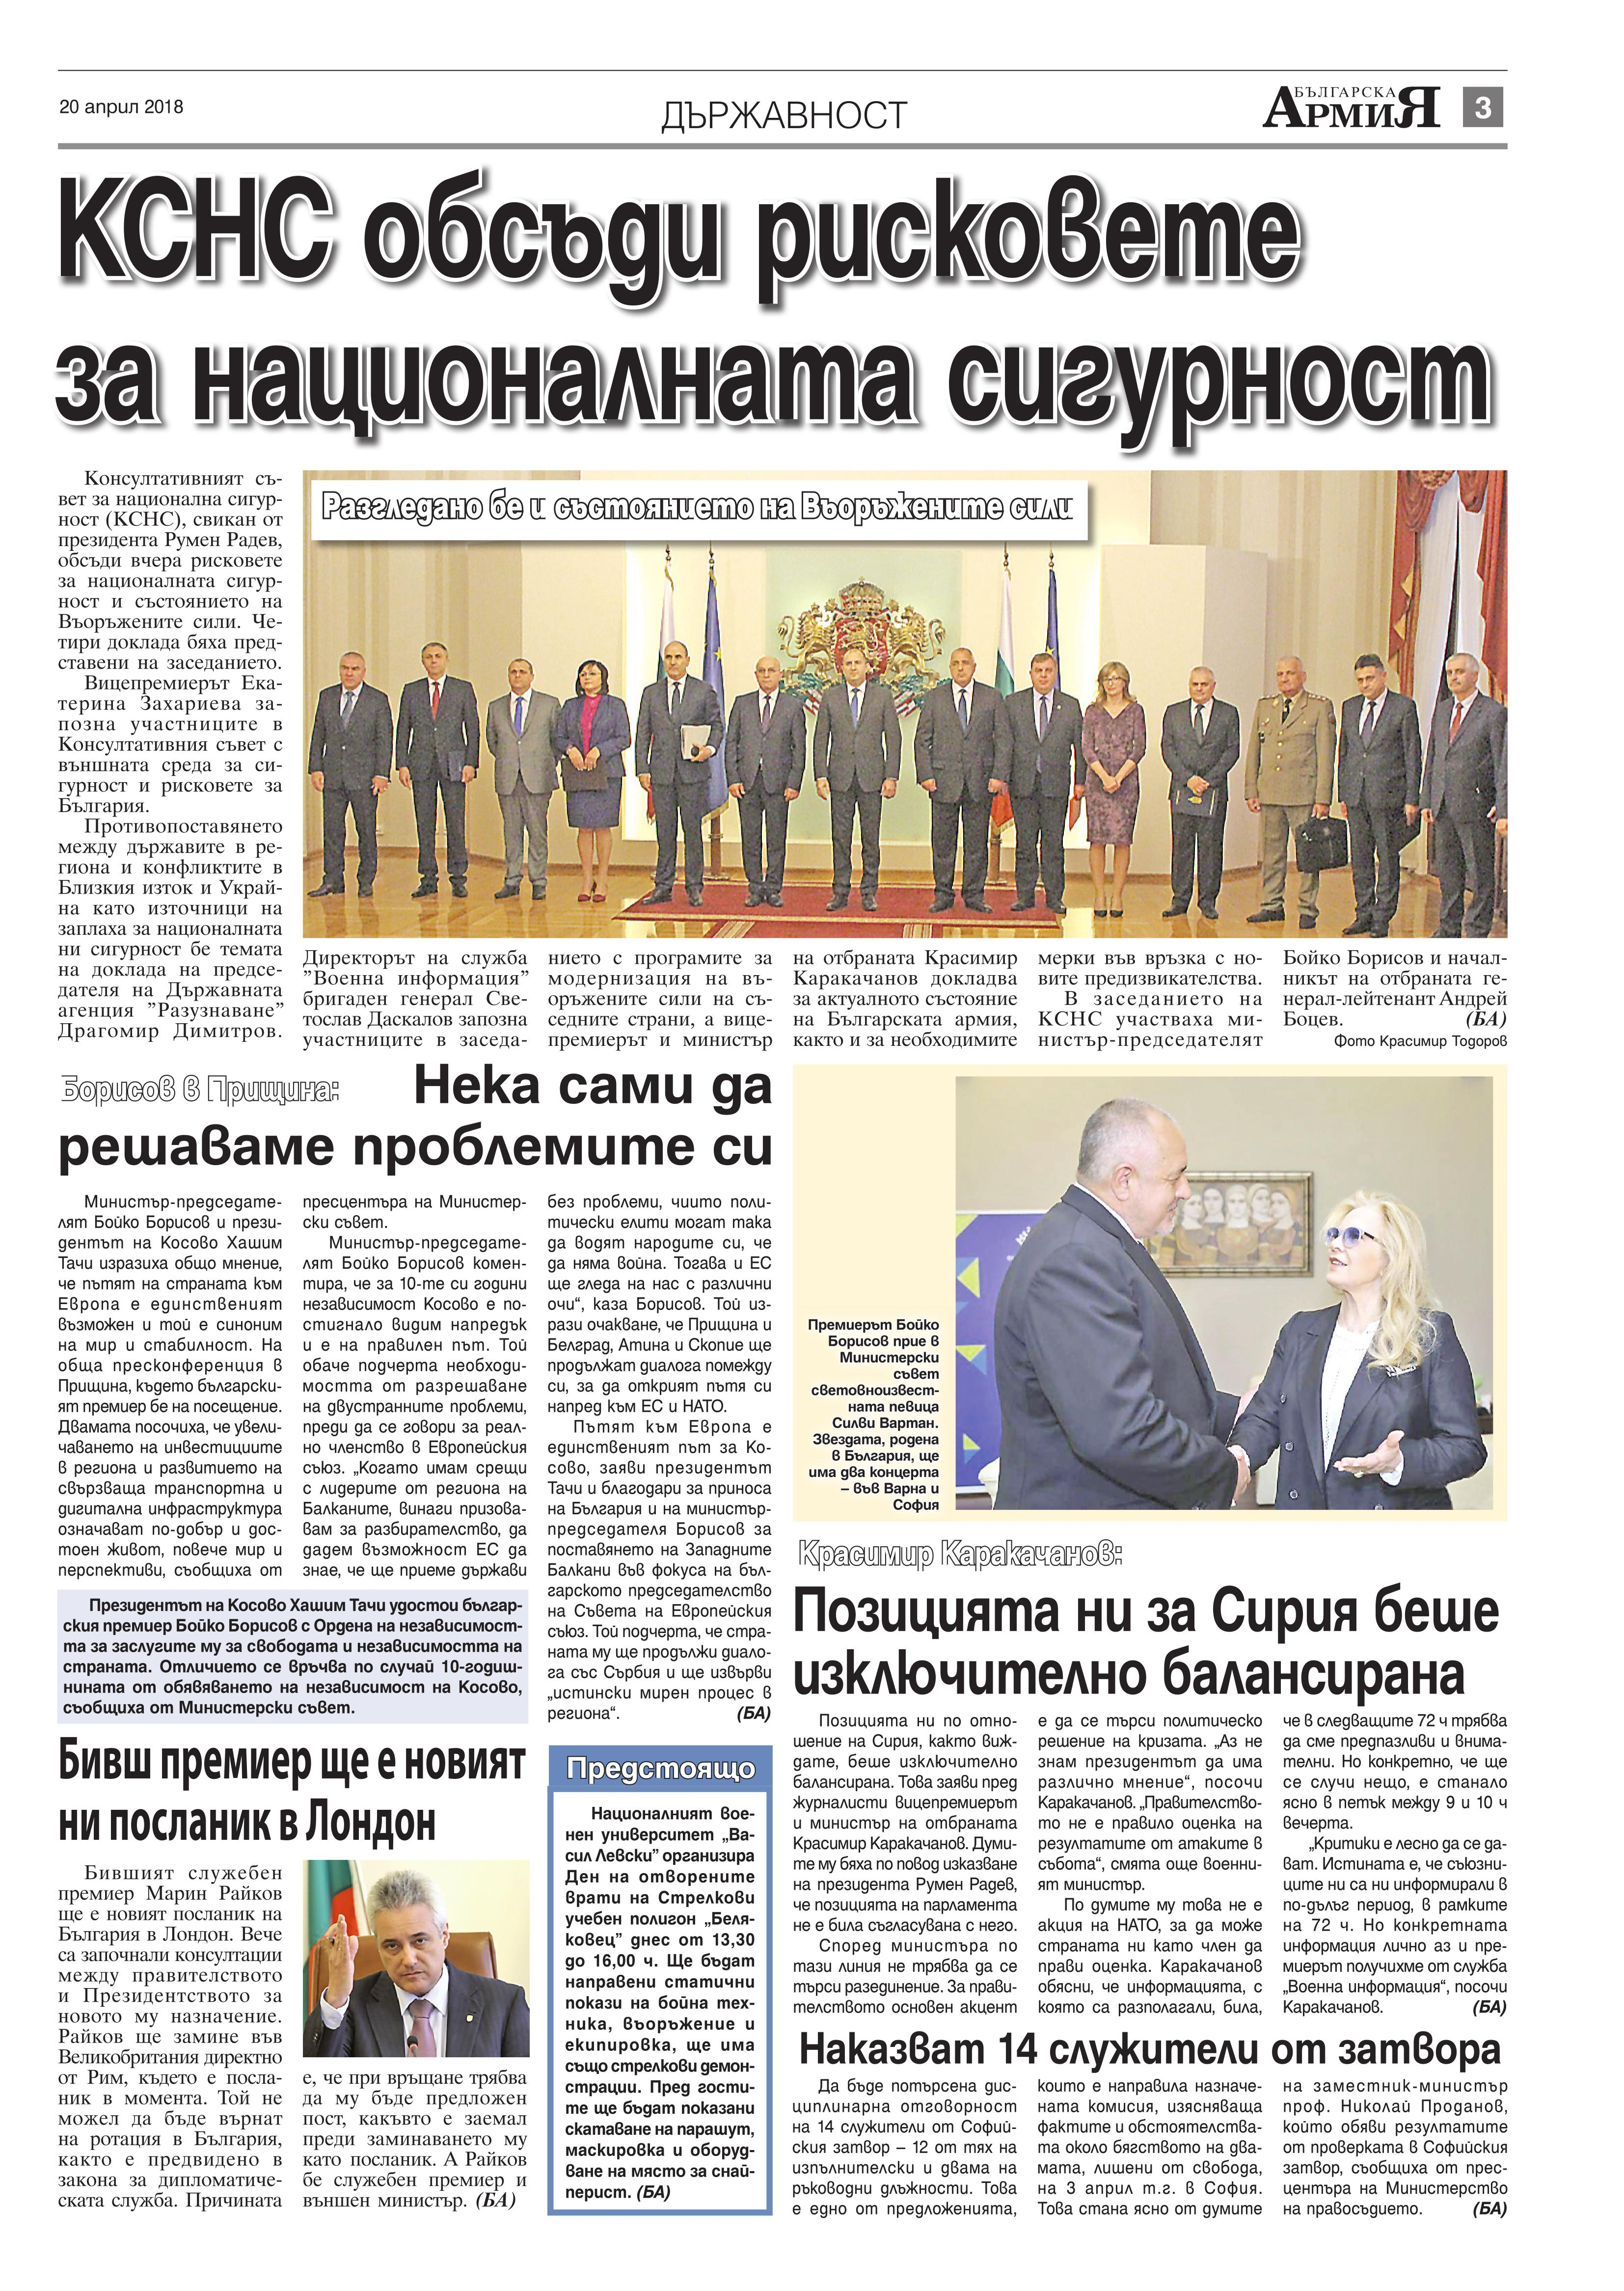 http://armymedia.bg/wp-content/uploads/2015/06/03.page1_-46.jpg